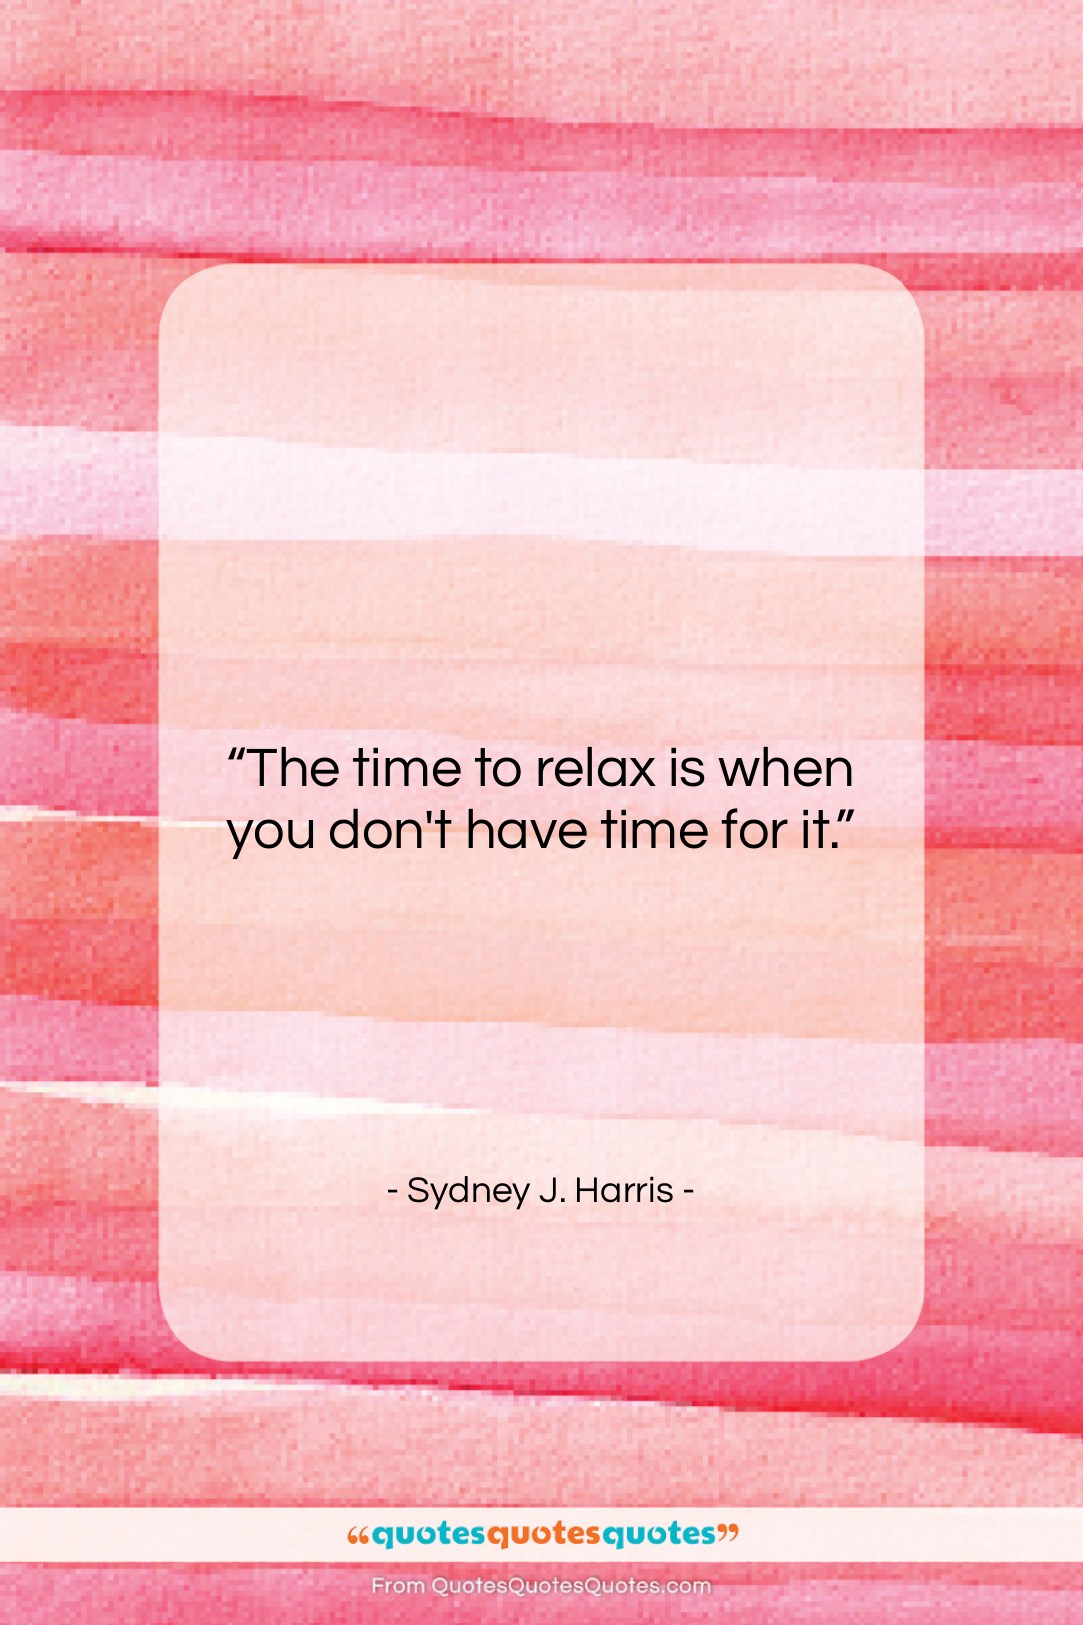 """Sydney J. Harris quote: """"The time to relax is when you…""""- at QuotesQuotesQuotes.com"""